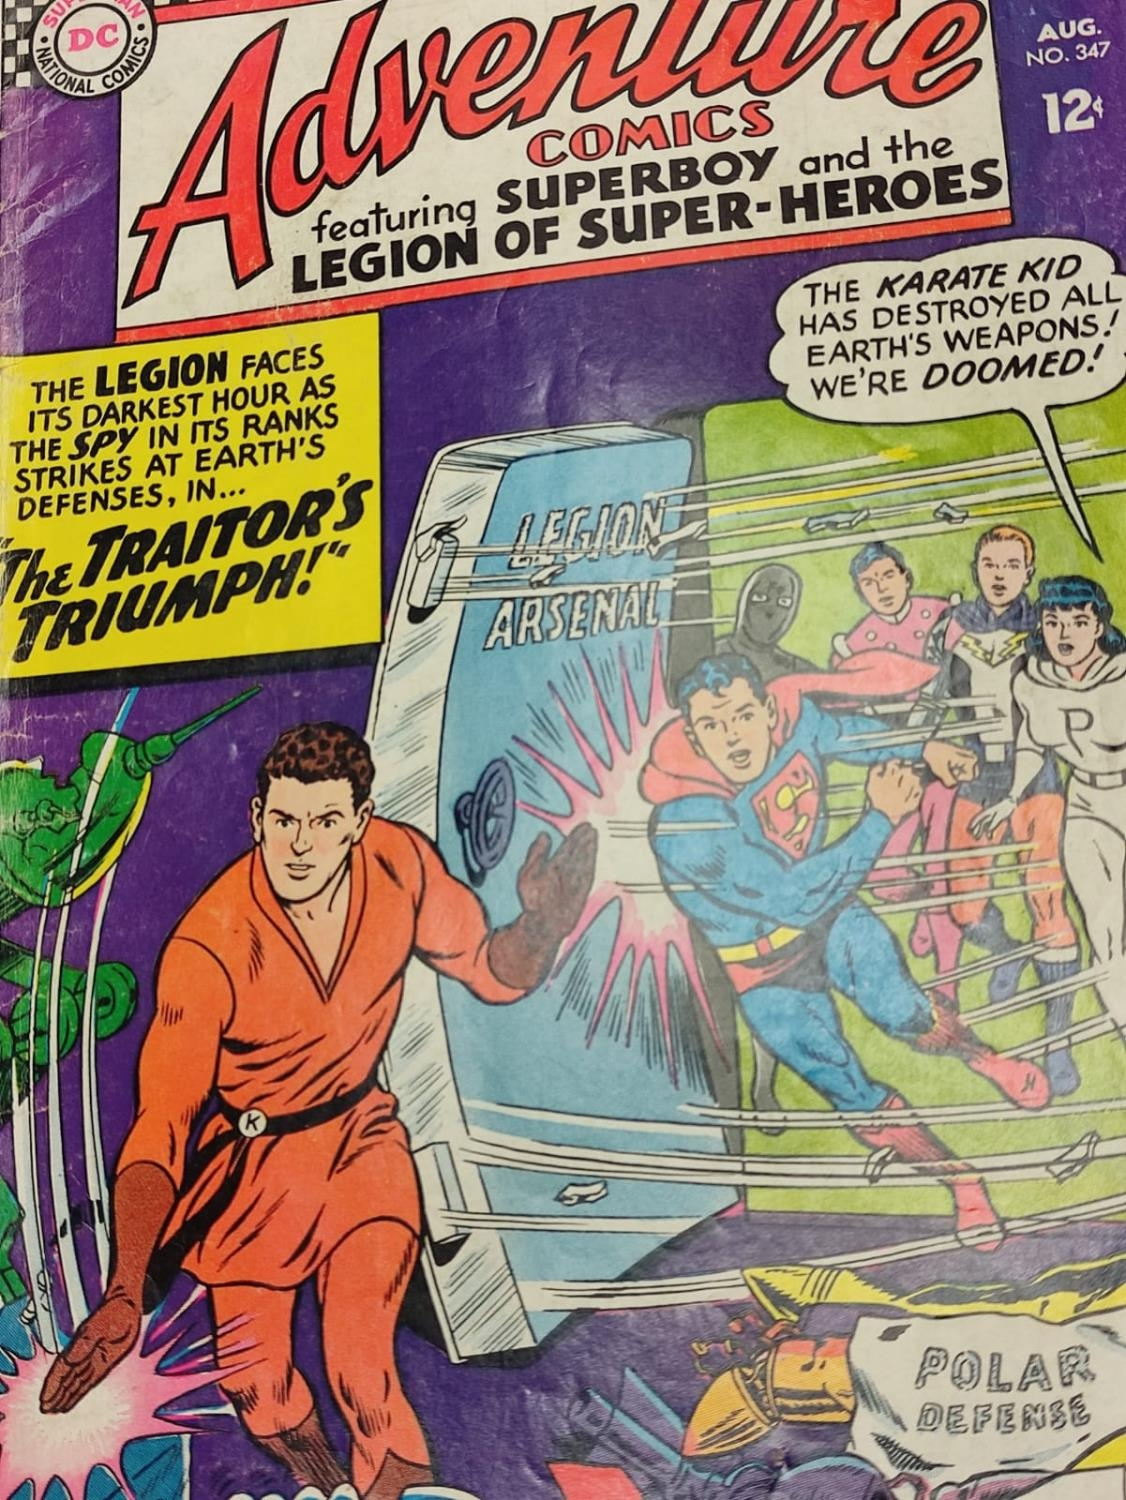 5 editions of DC Adventure Comics featuring Super-boy. - Image 8 of 19